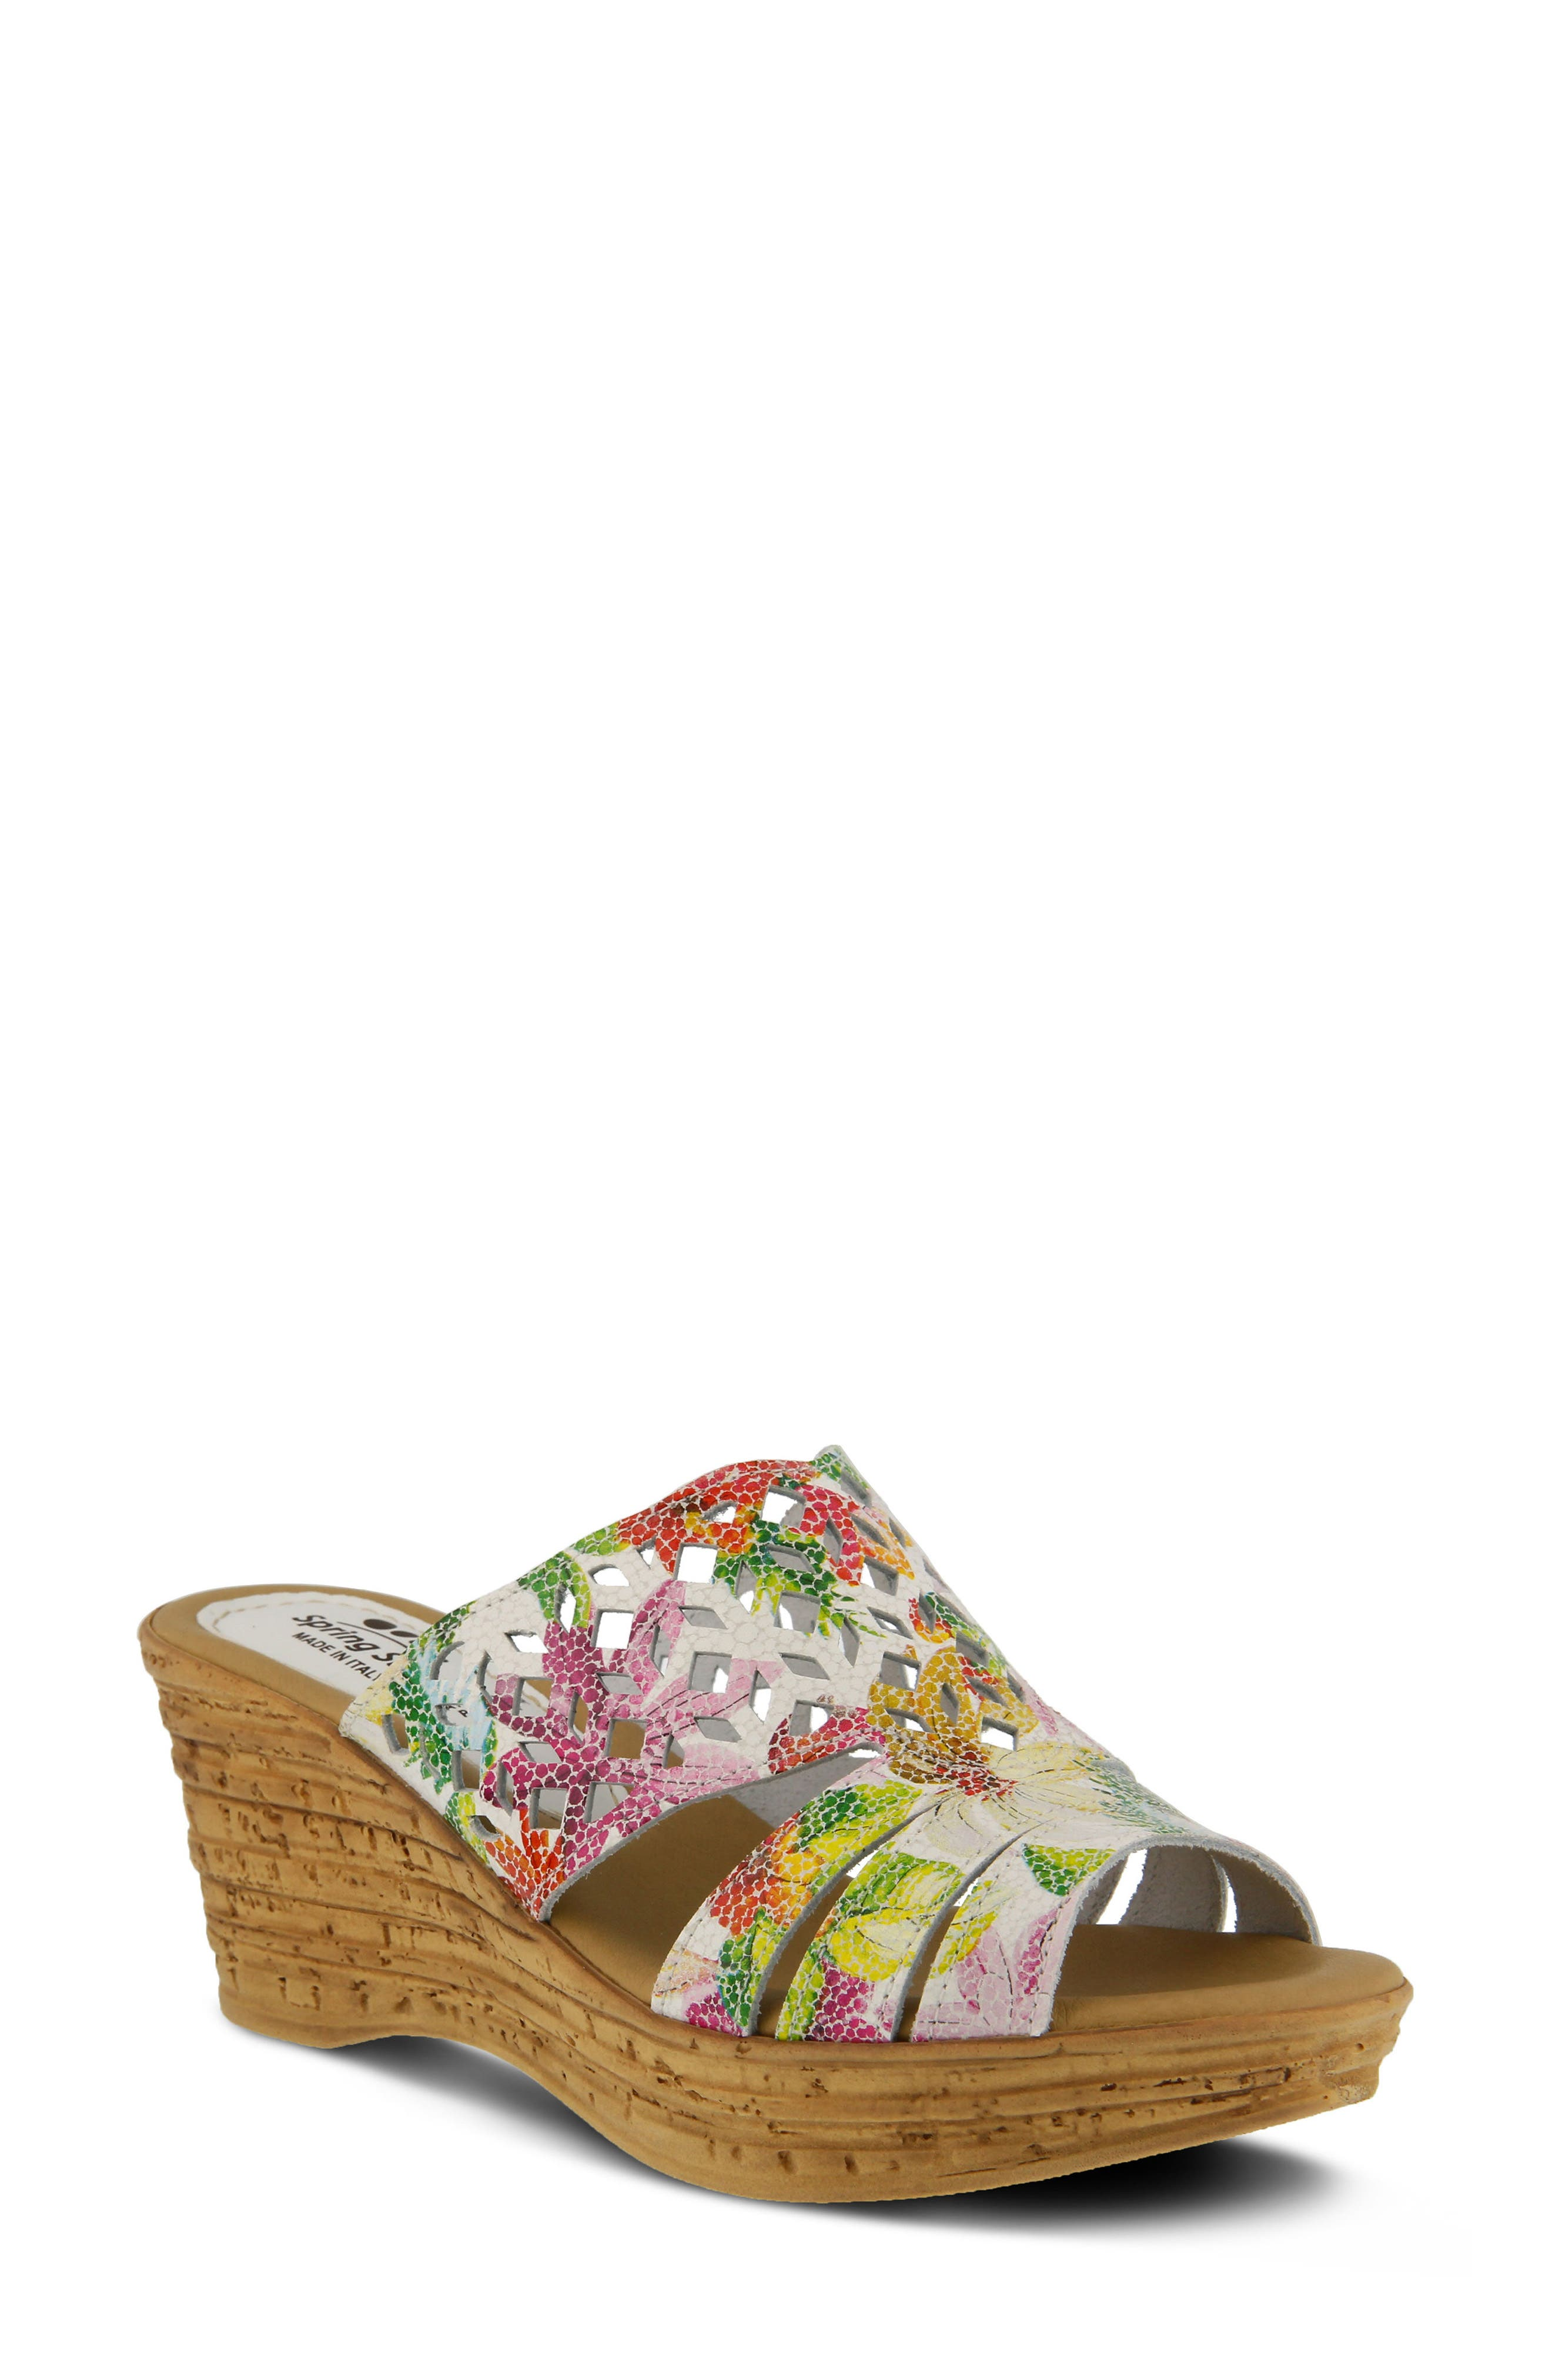 Viniko Platform Wedge Sandal,                         Main,                         color, WHITE LEATHER